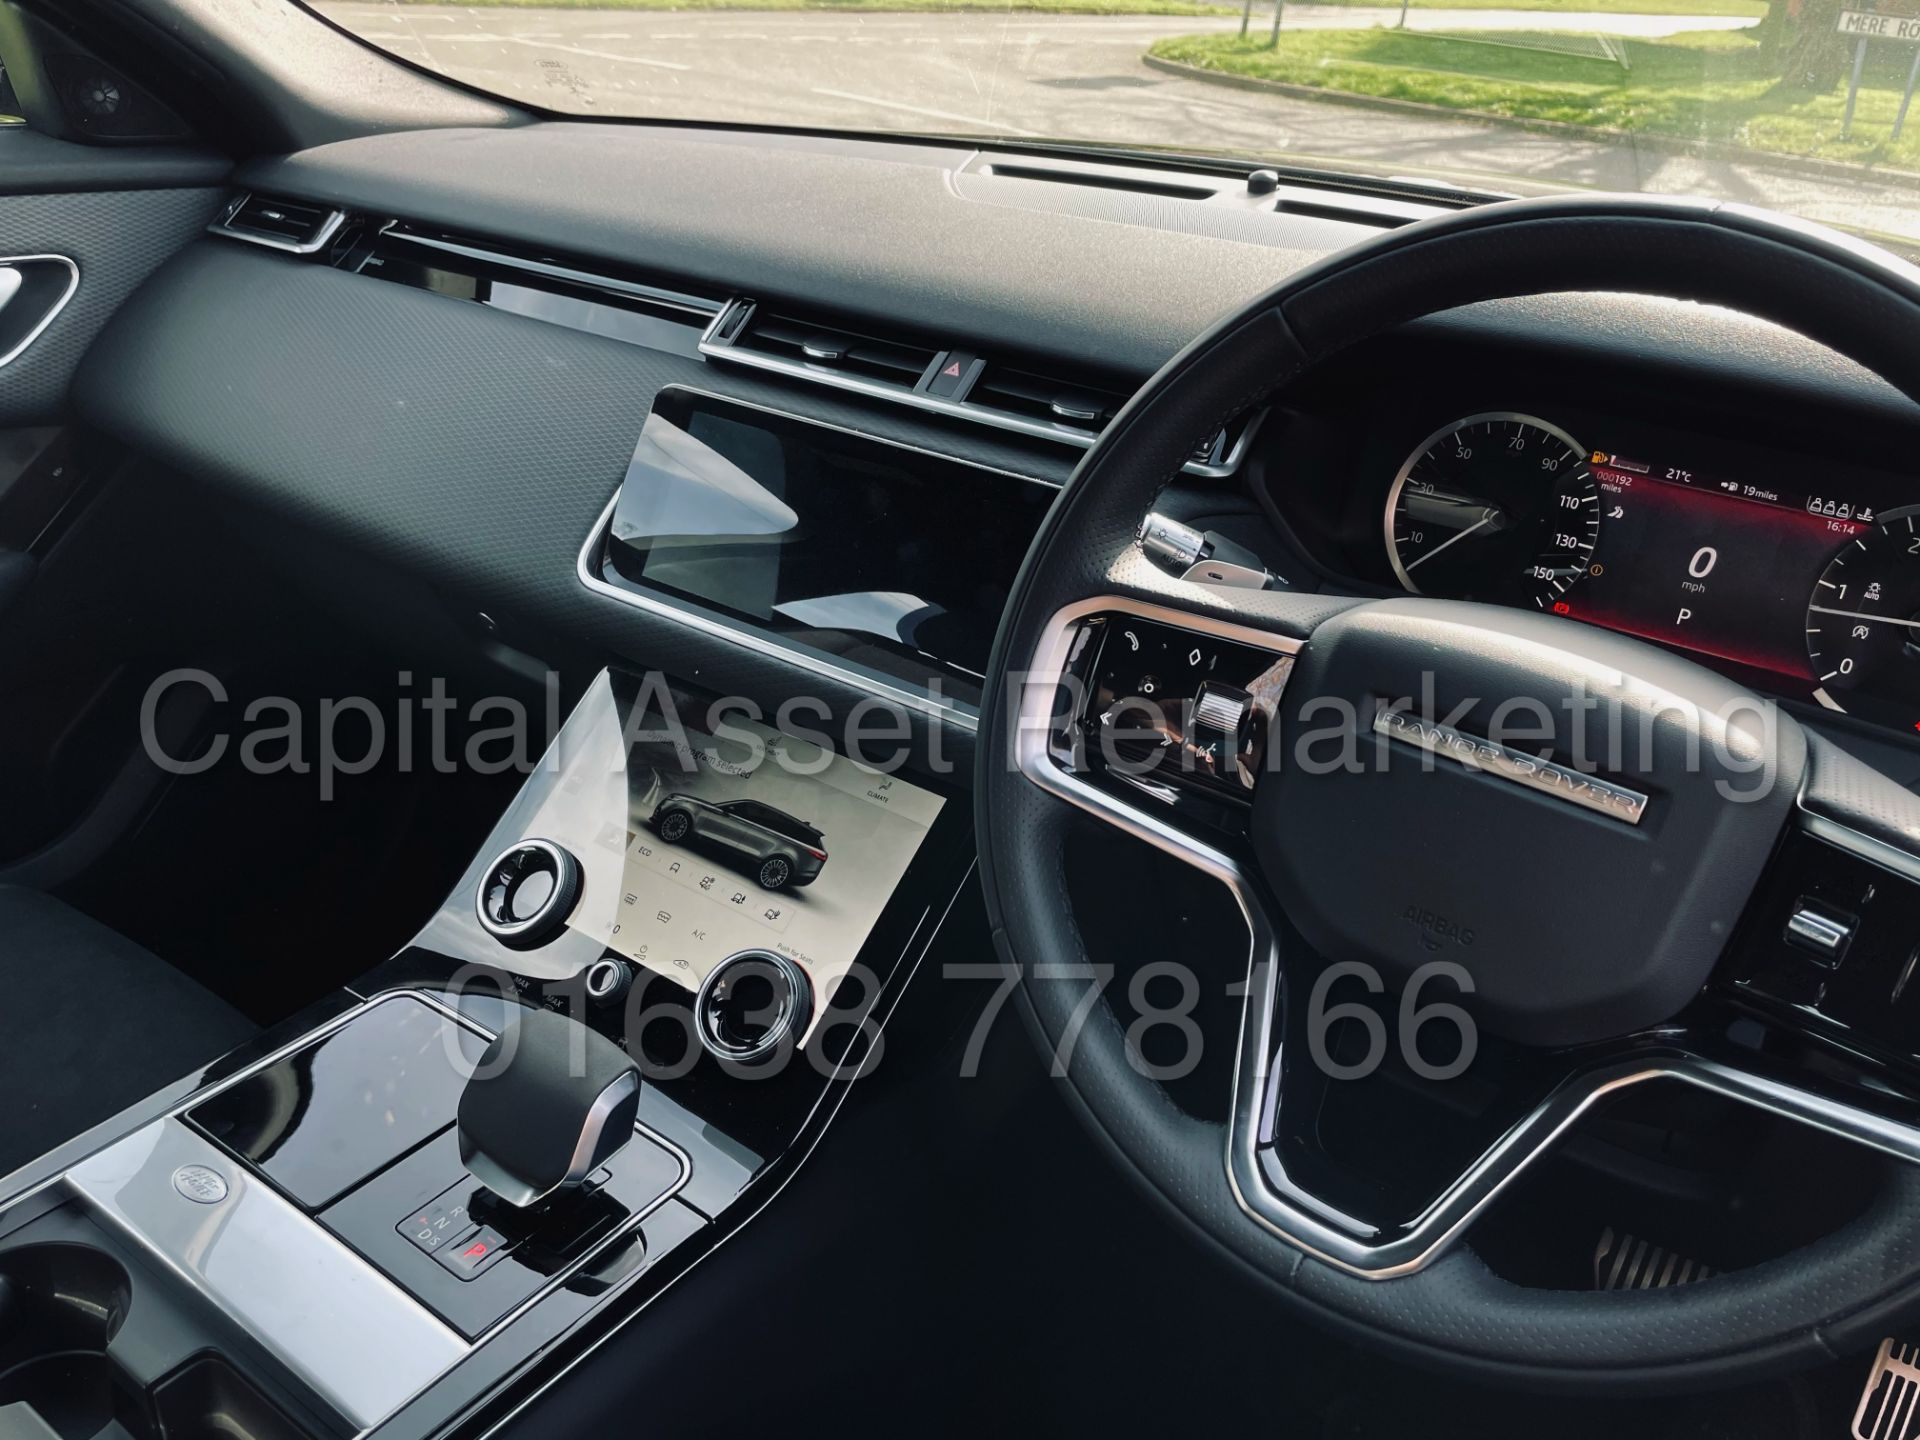 (On Sale) RANGE ROVER VELAR *R-DYNAMIC* SUV (2021) *8 SPEED AUTO - LEATHER* (DELIVERY MILES) - Image 39 of 50